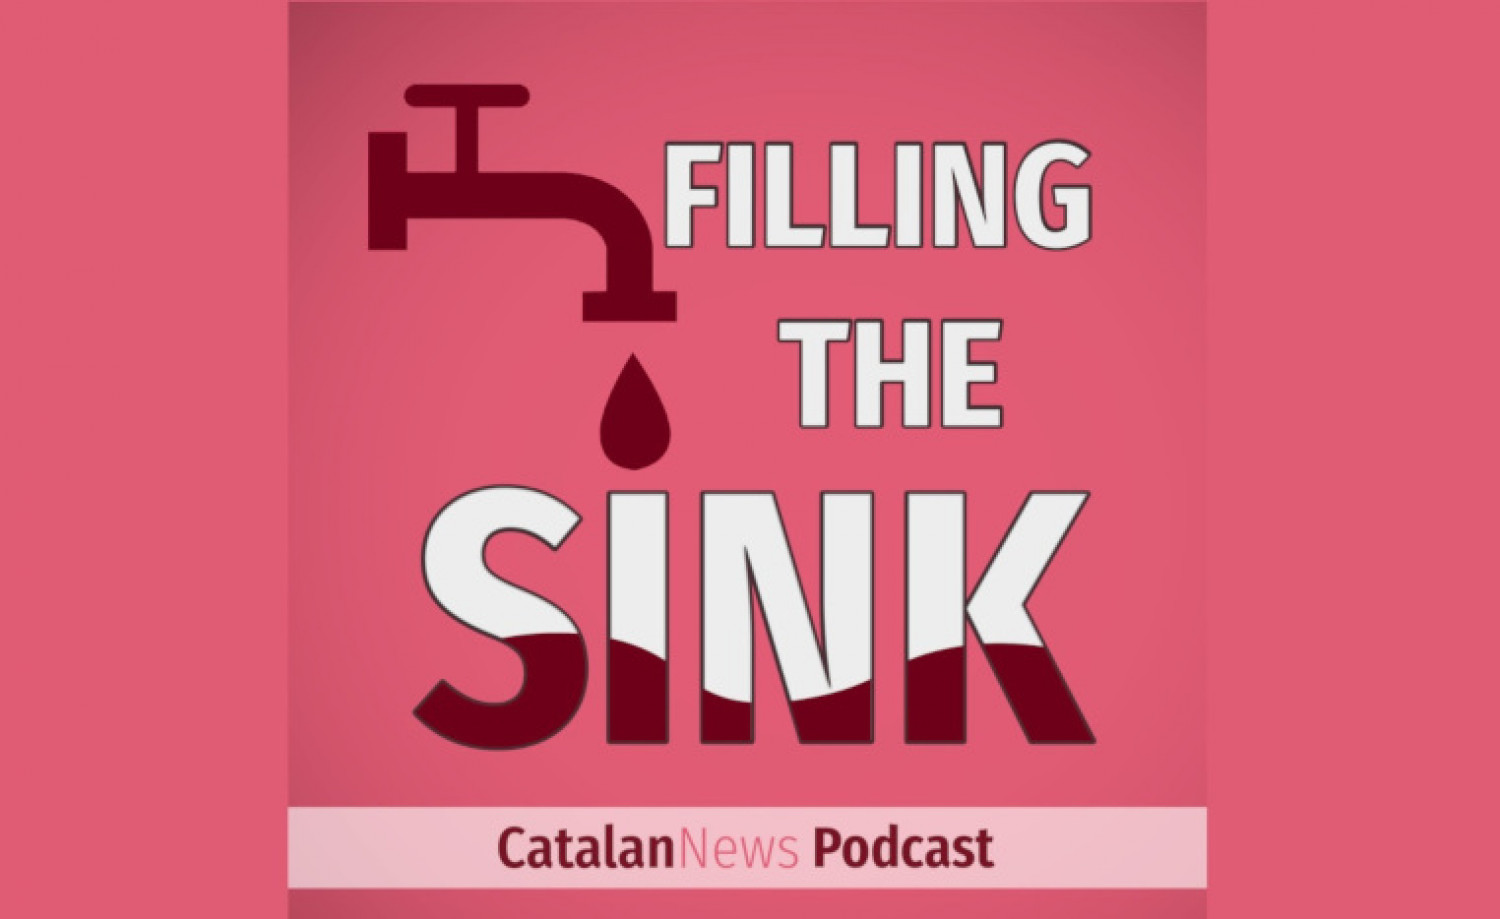 Filling the Sink Logo (ACN)